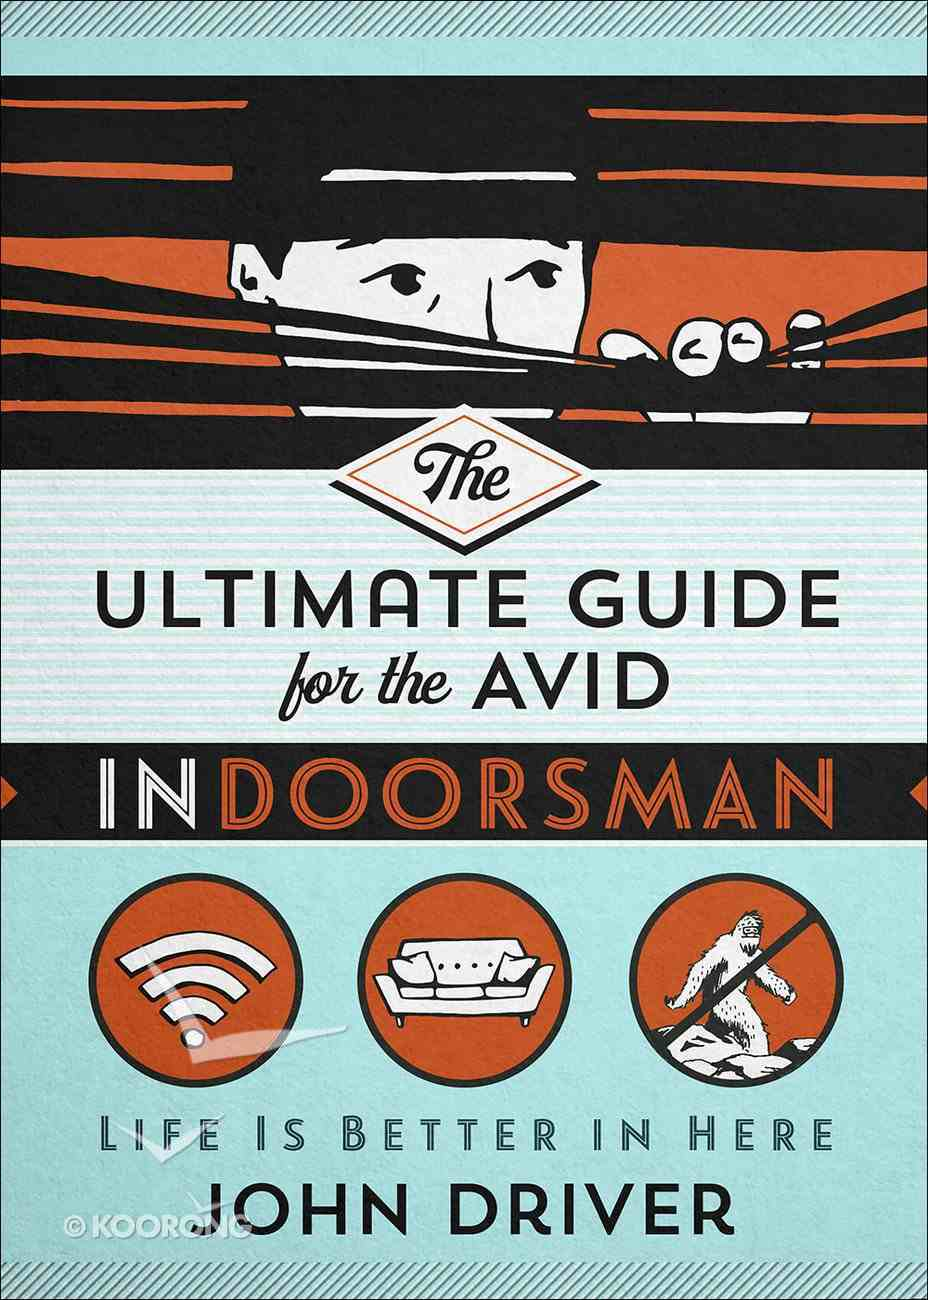 The Ultimate Guide For the Avid Indoorsman: Life is Better in Here Paperback